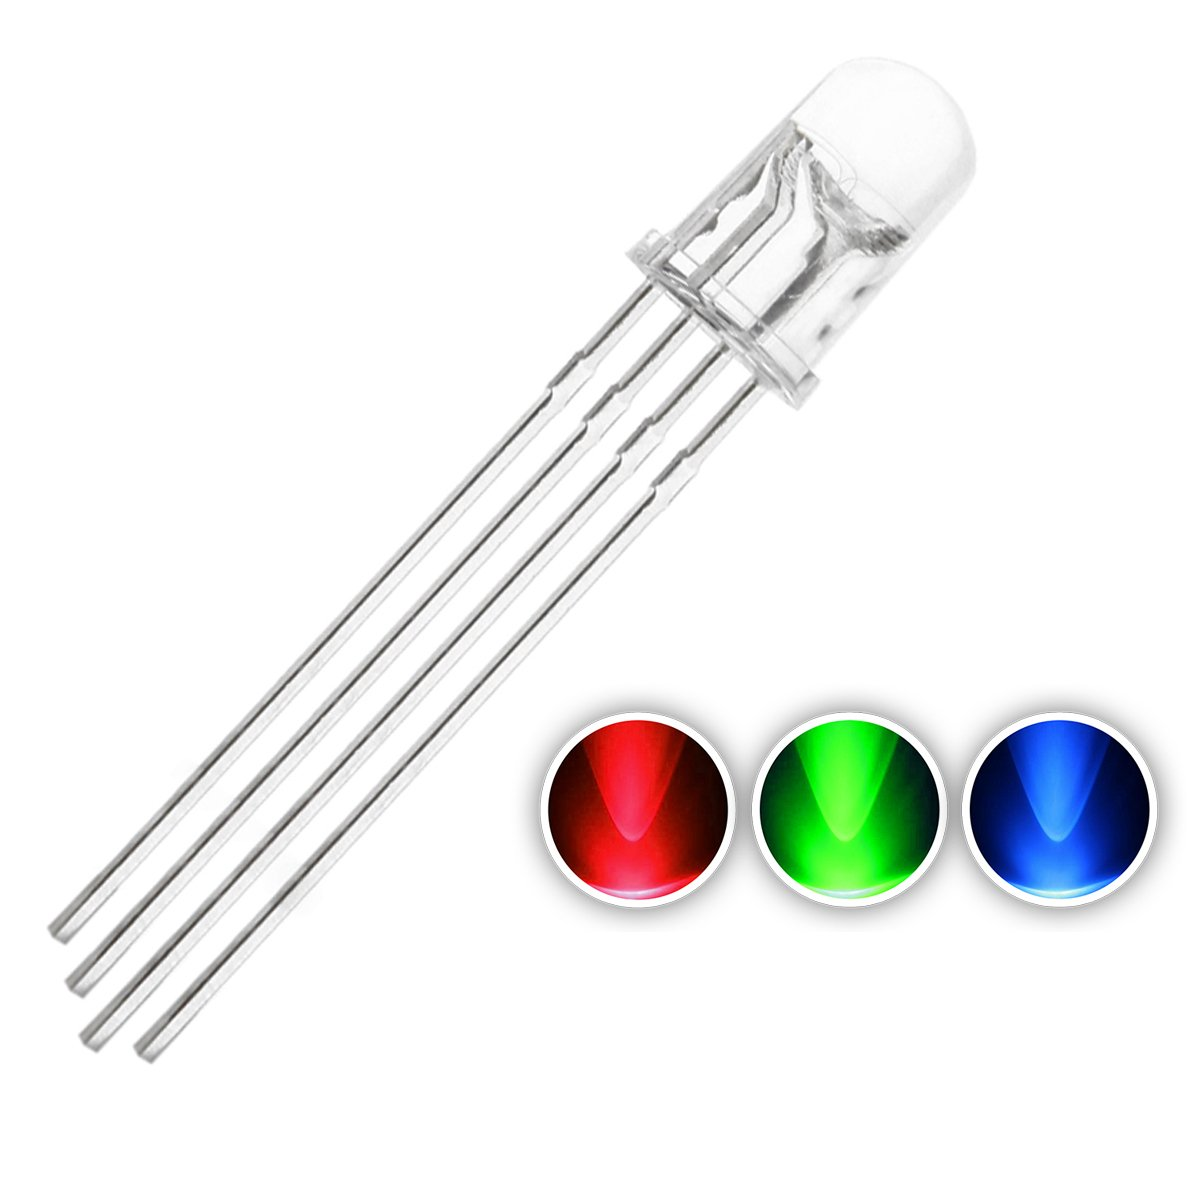 Chanzon 100 Pcs 5mm Rgb Led Diode Lights Tricolor Tricolorledcircuitjpg Multicolor Red Green Blue 4 Pin Common Cathode Clear Dc 20ma Color Super Bright Lighting